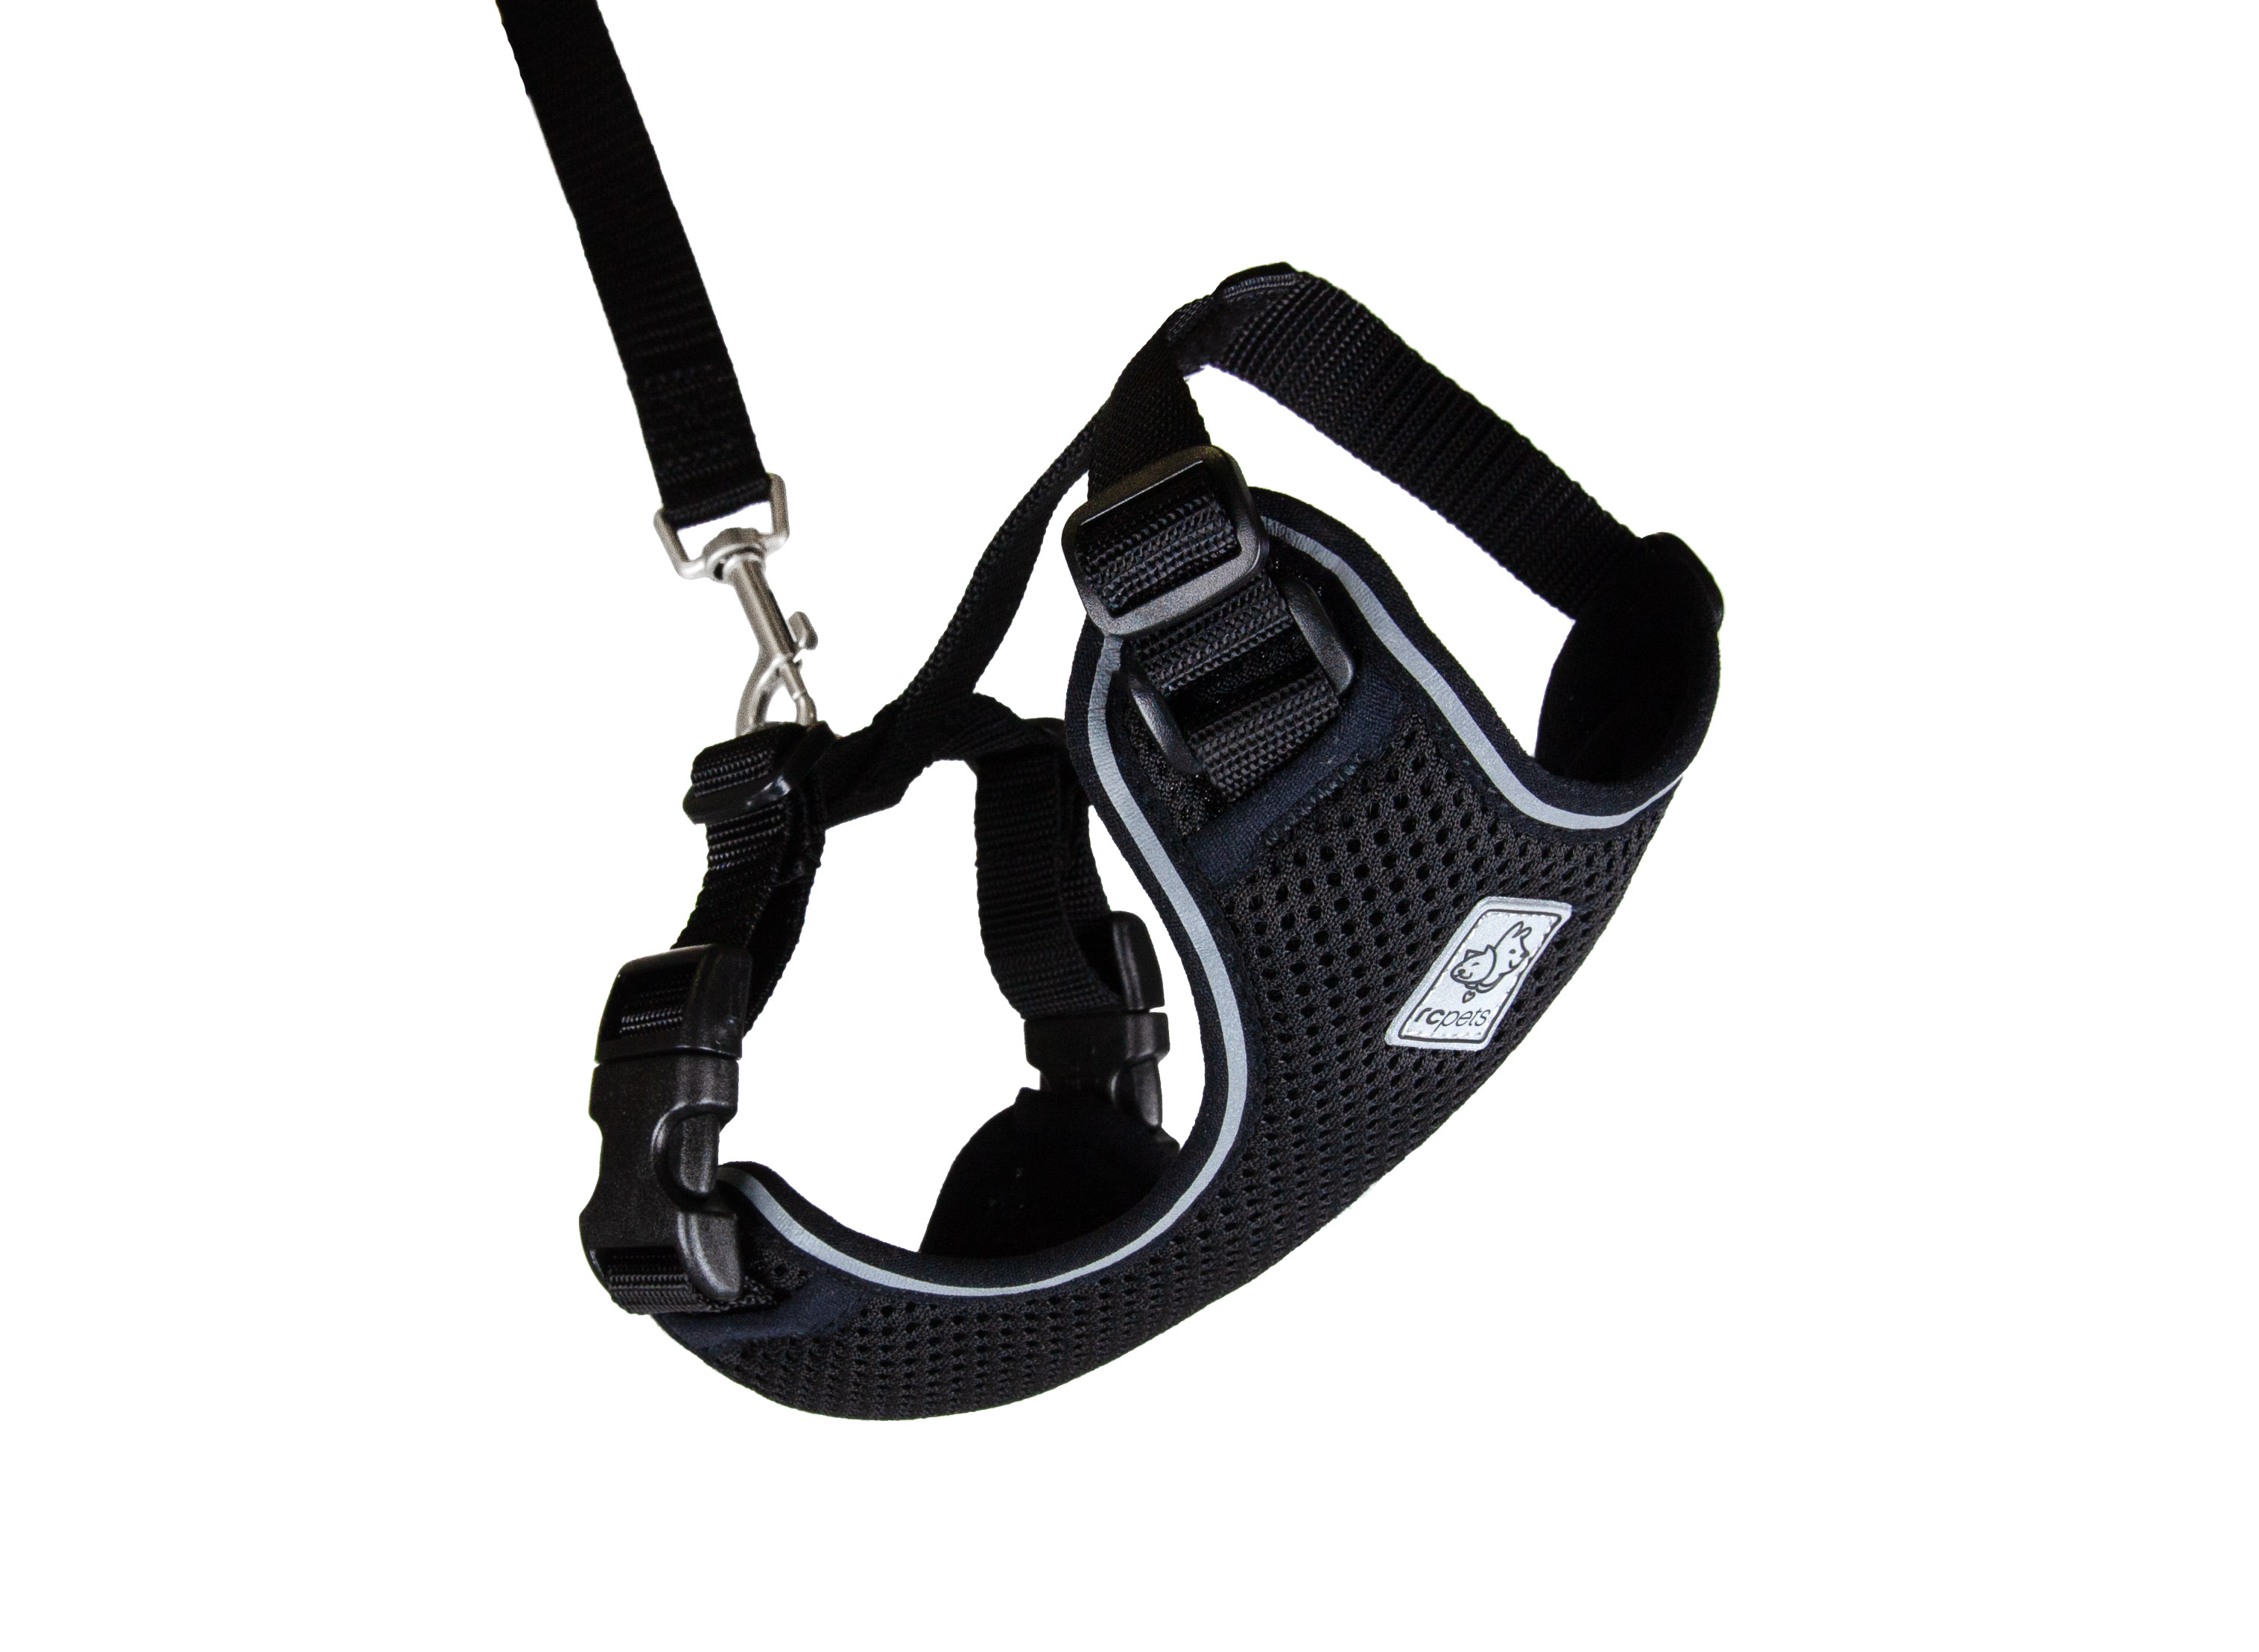 RC Pet Products Adventure Kitty Harness, Black Image